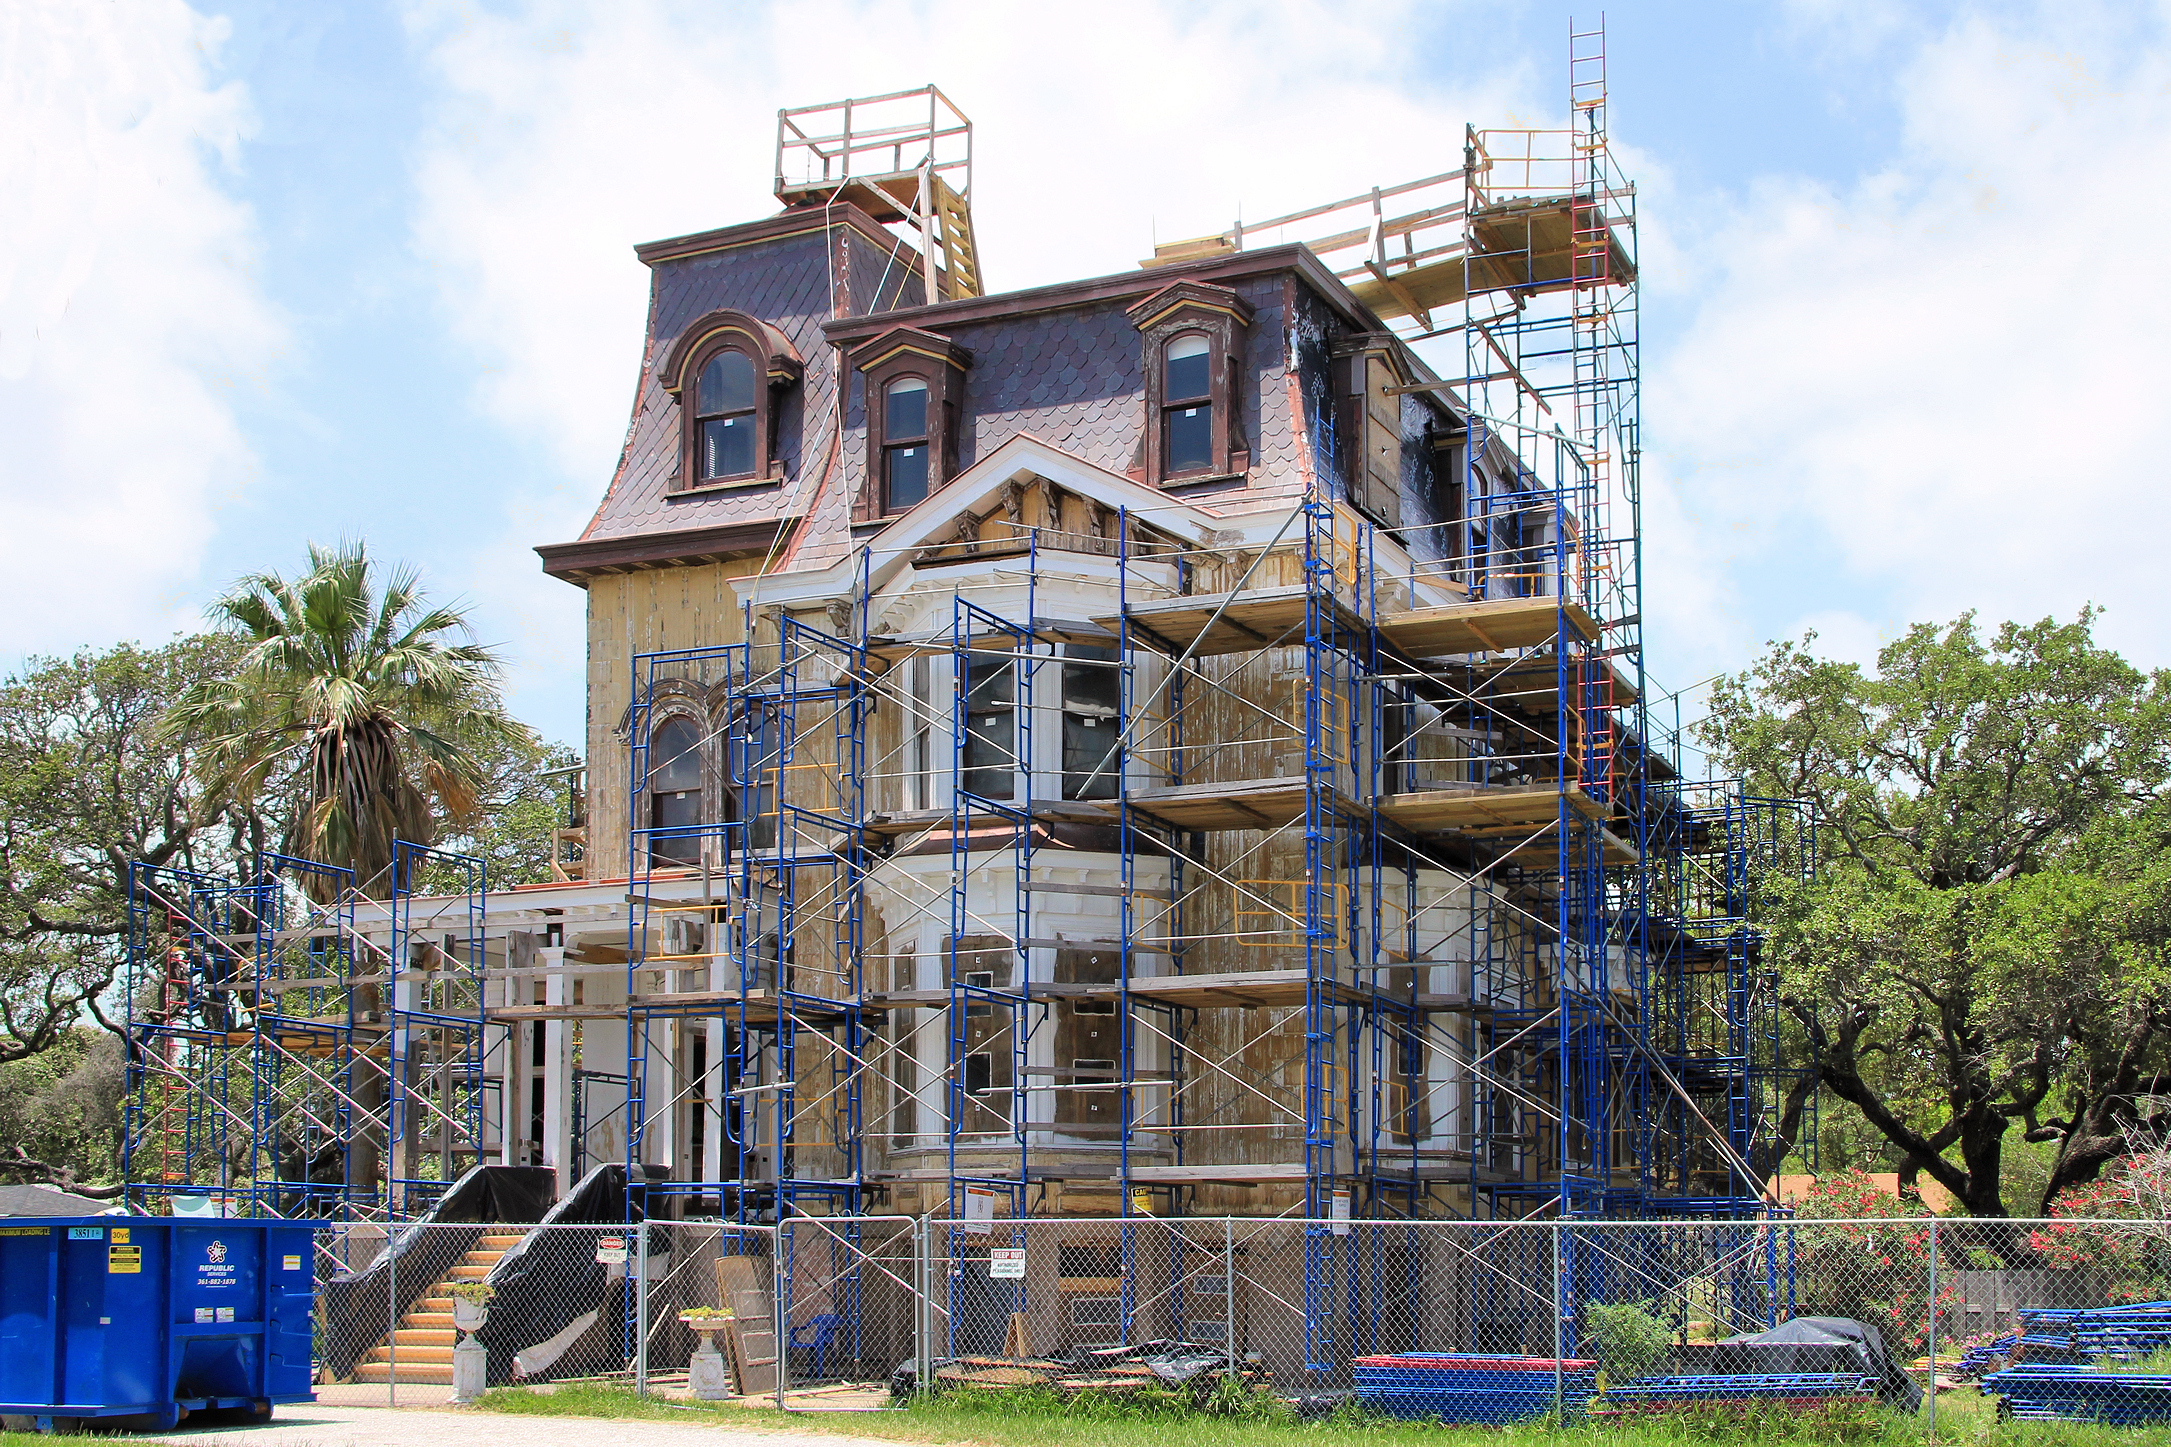 Fulton mansion renovations 2014.jpg English: The George W. Fulton Mansion Fulton, Texas, United States undergoing renovations. The Second Empire